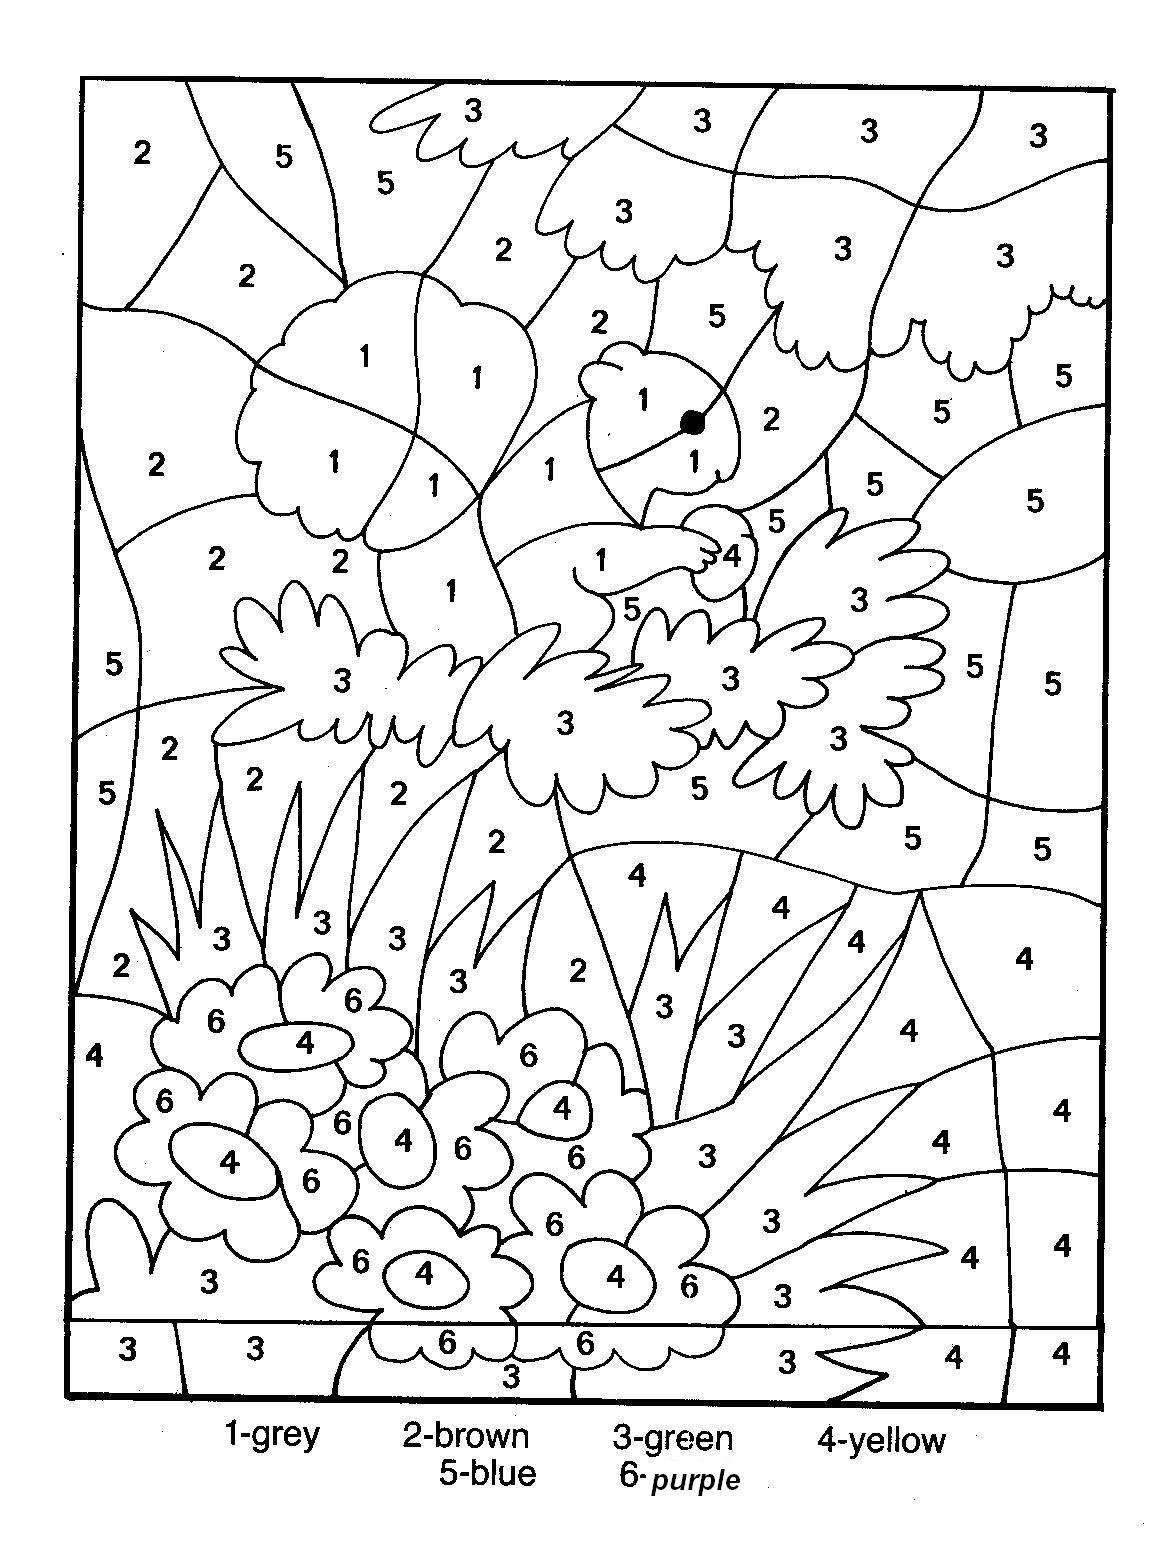 Printable Colornumber For Adults | Colornumber Coloring - Free Printable Color By Number For Adults